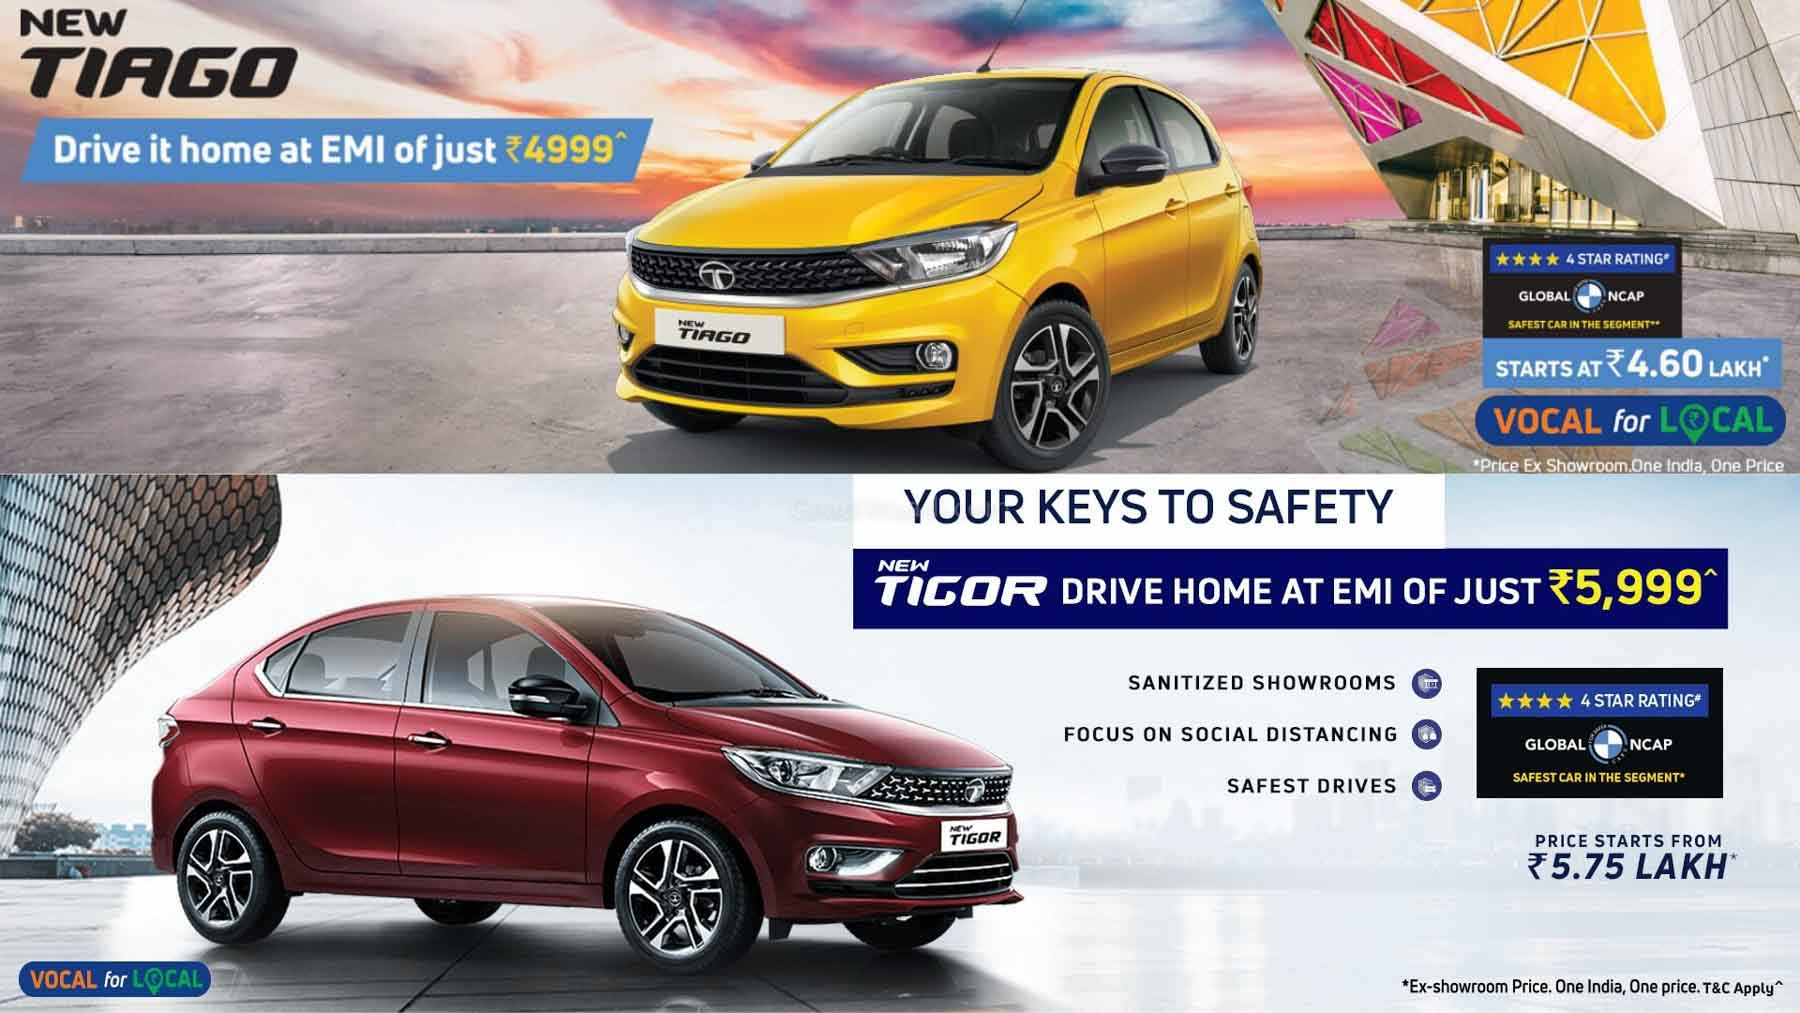 Tata Tiago Offered With Rs. 4,999 EMI, Tigor With Rs. 5,999 EMI – Details